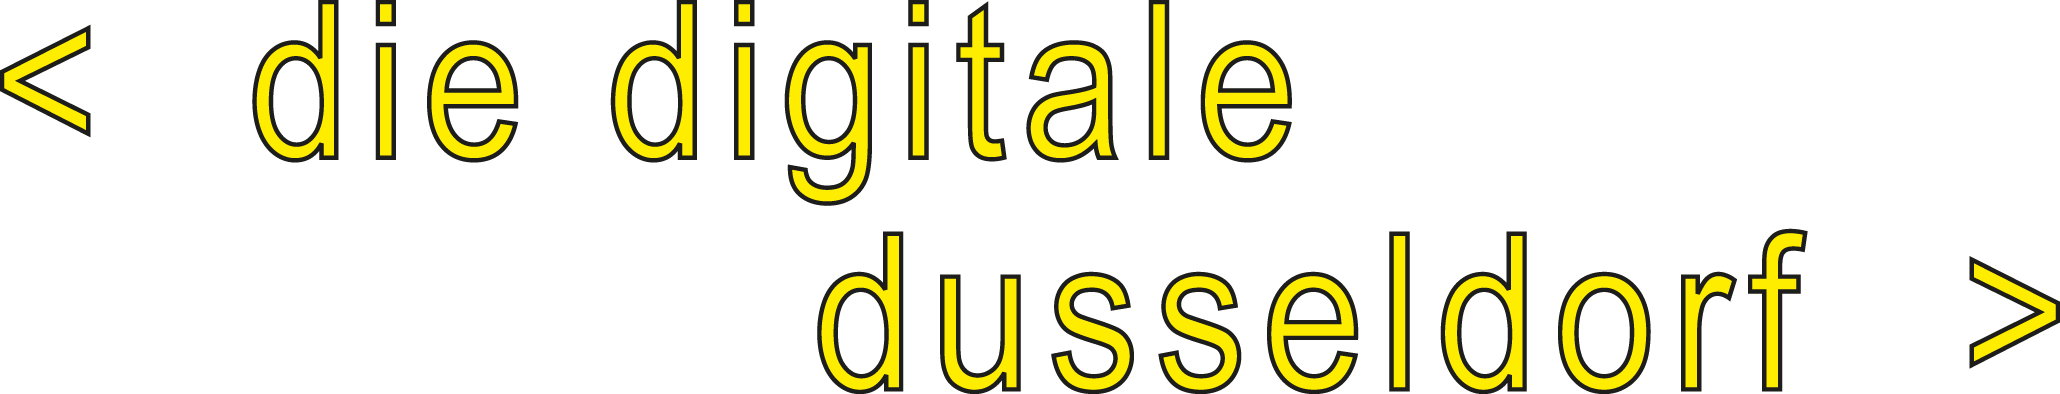 die digitale